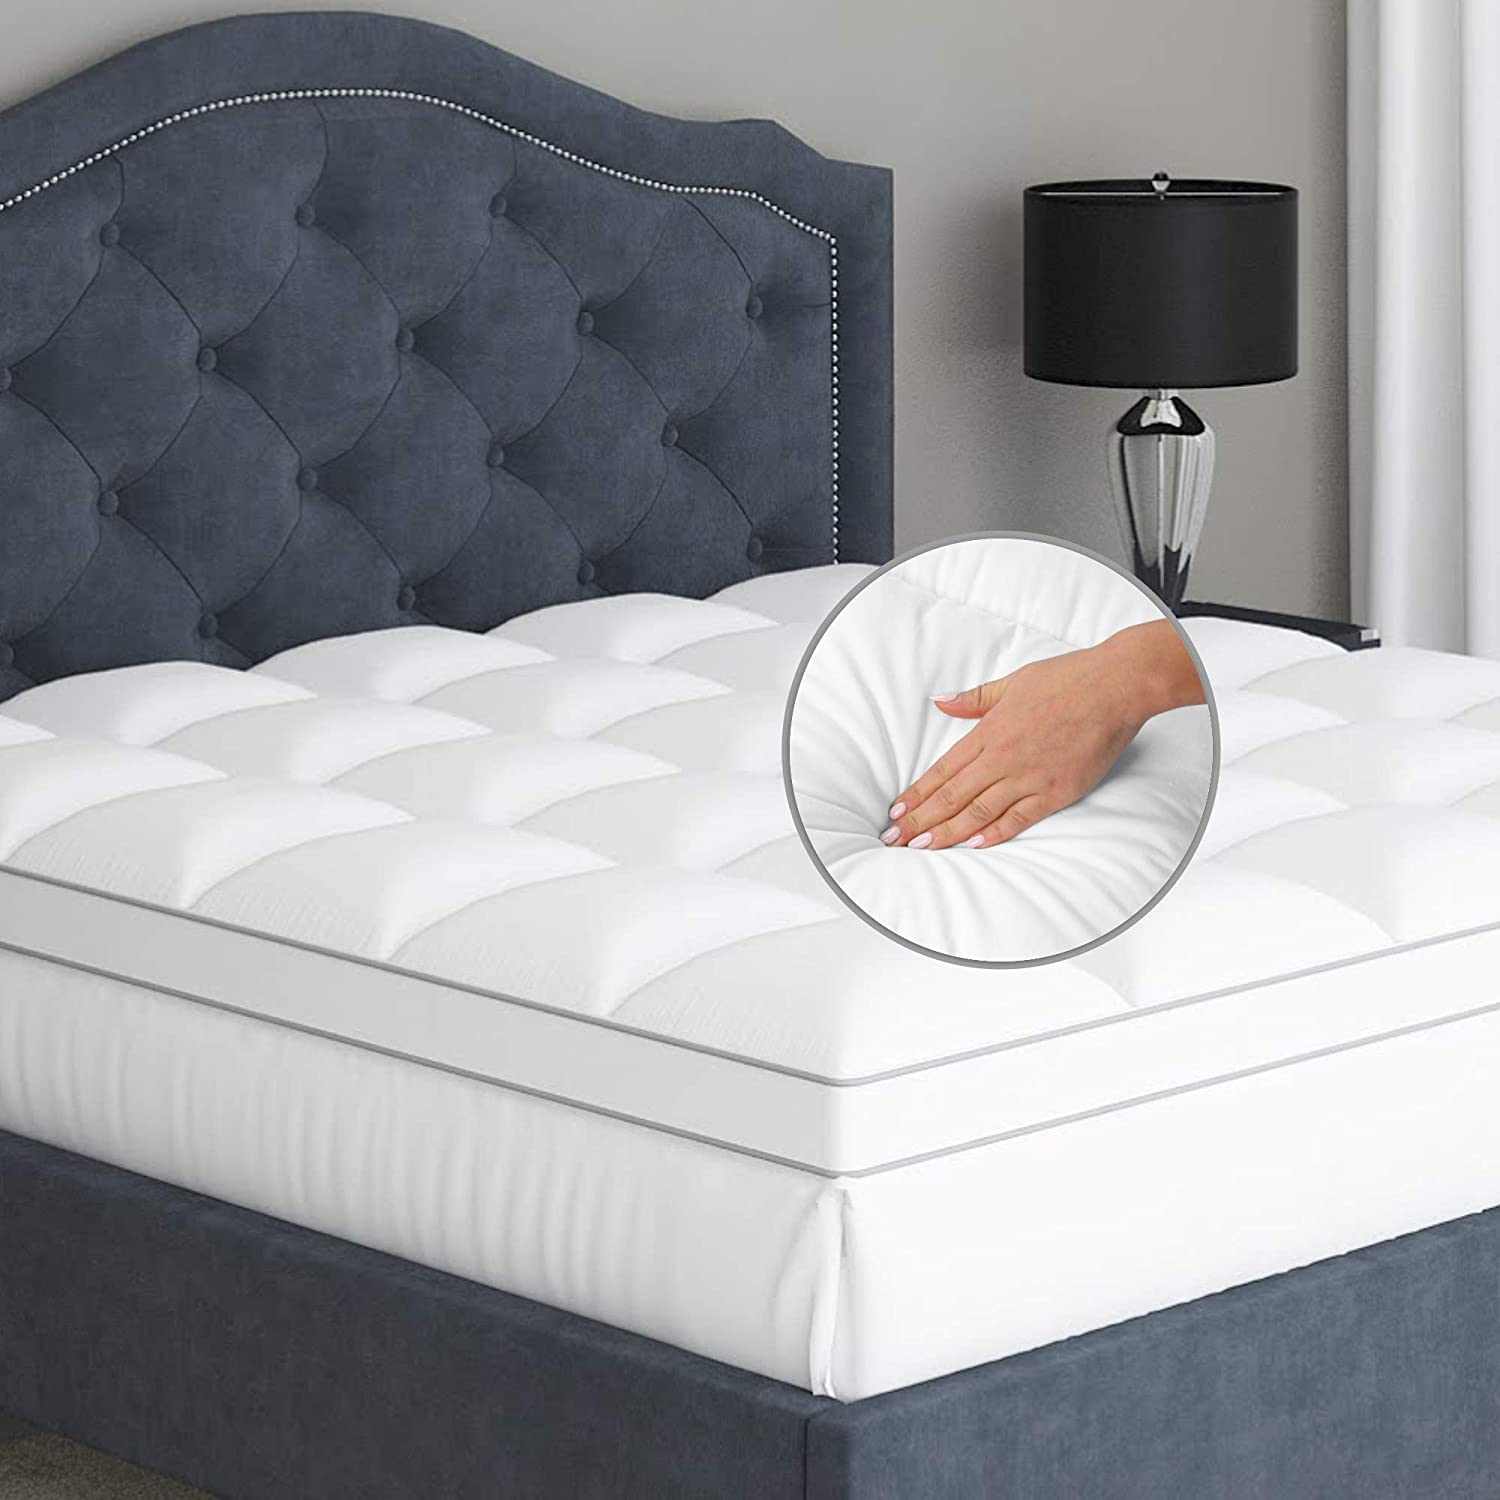 Twin Mattress Topper Pillow Top - Soft 100% Cotton Top Premium Mattress Pad, Optimum Thickness with Down Alternative Fill, Deep Pocket Fitted Skirt for Mattress 16 Inches: Furniture & Decor